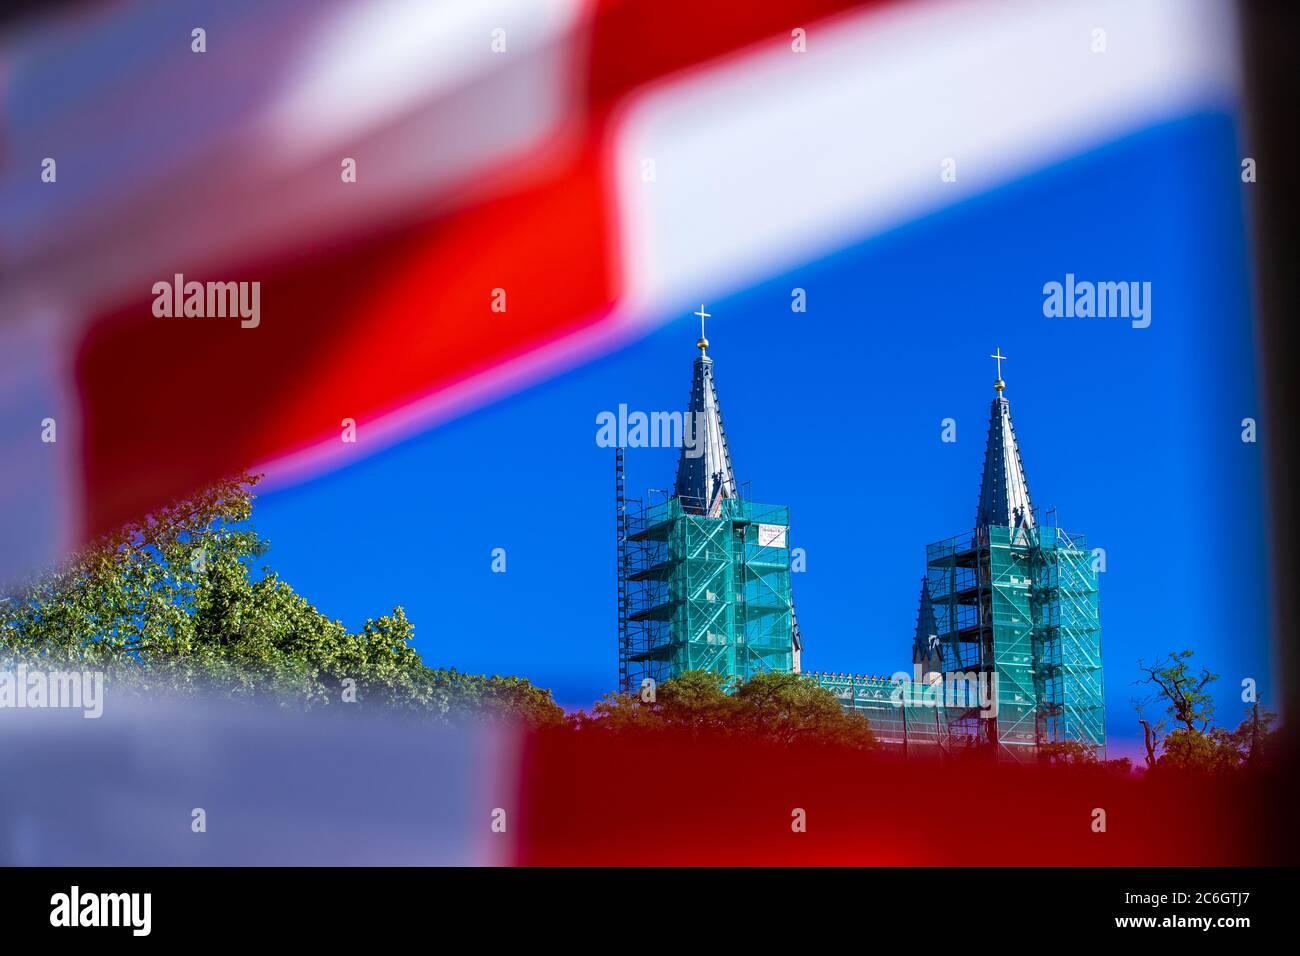 Neustrelitz, Germany. 23rd June, 2020. The castle church is completely scaffolded due to renovation work. The neo-Gothic church on Hertelstraße was built between 1855 and 1859. Credit: Jens Büttner/dpa-Zentralbild/ZB/dpa/Alamy Live News Stock Photo